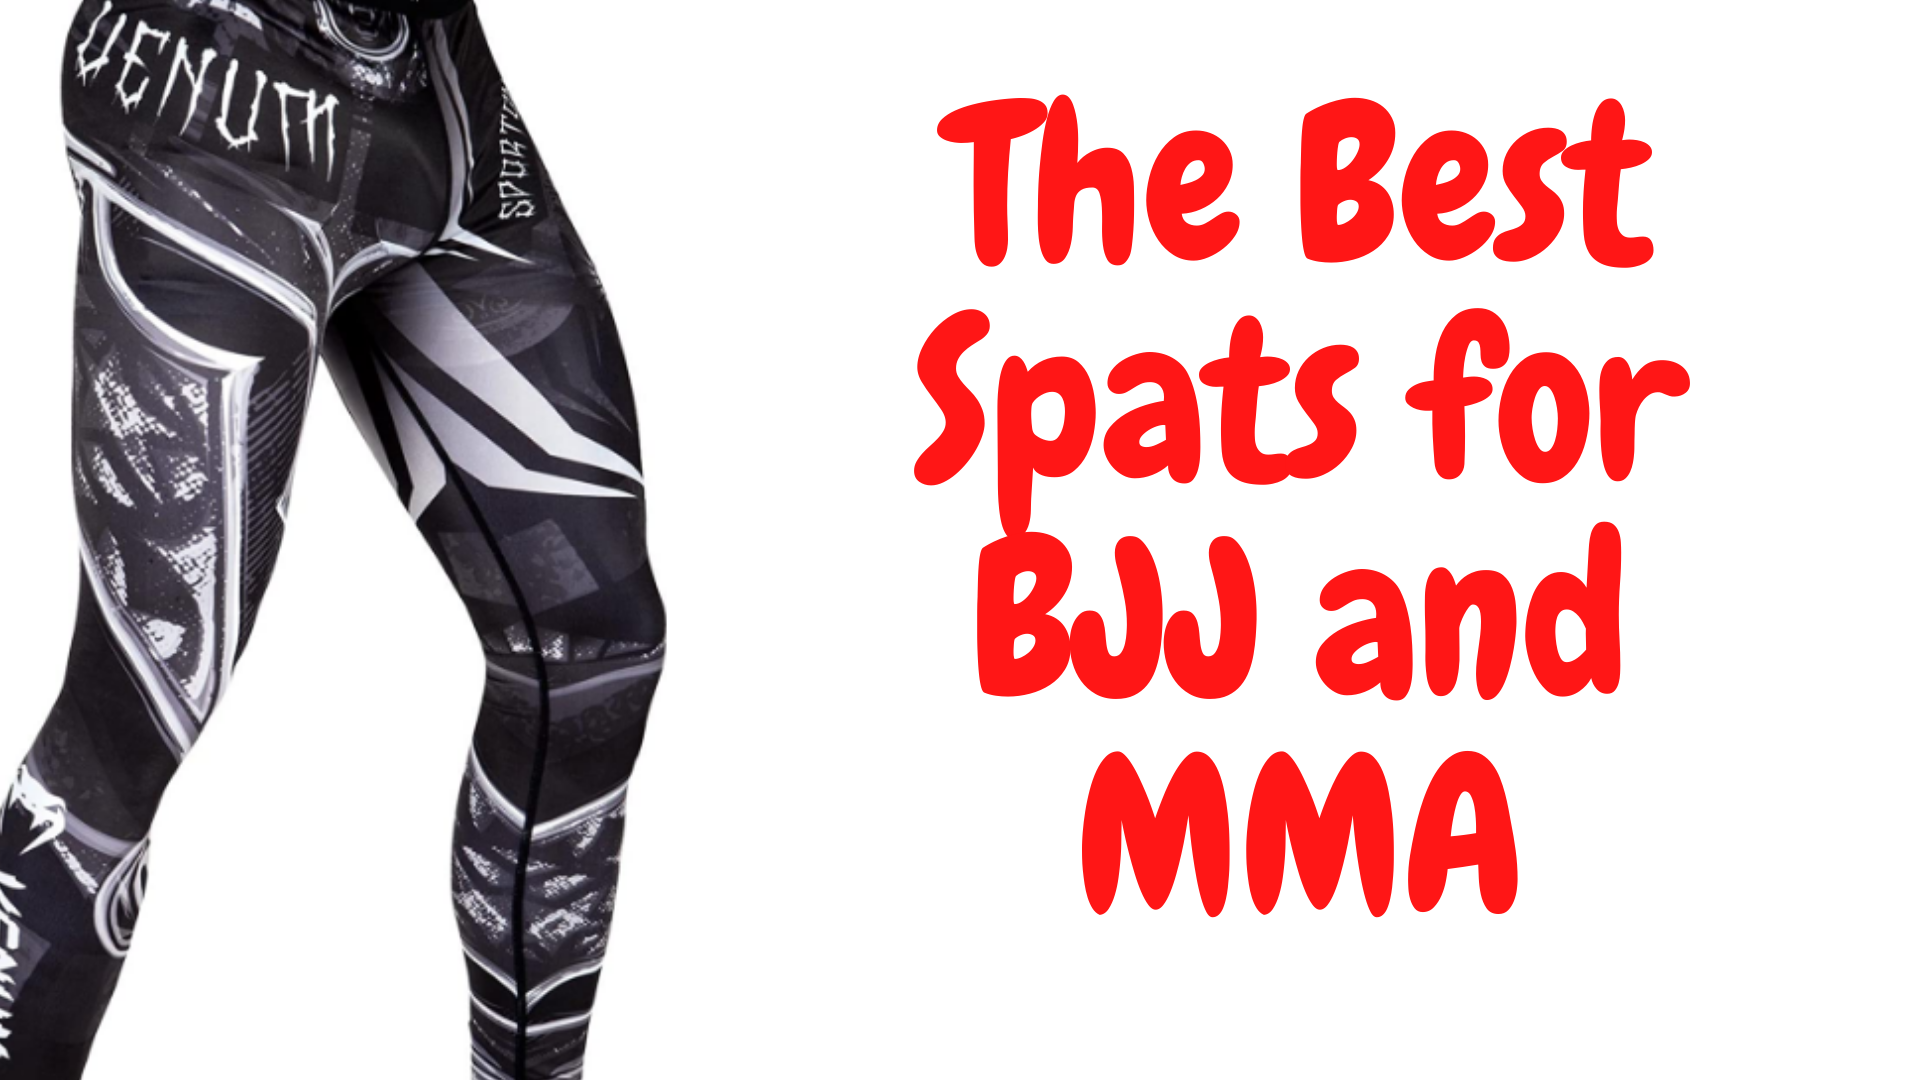 The Best Spats for BJJ and MMA